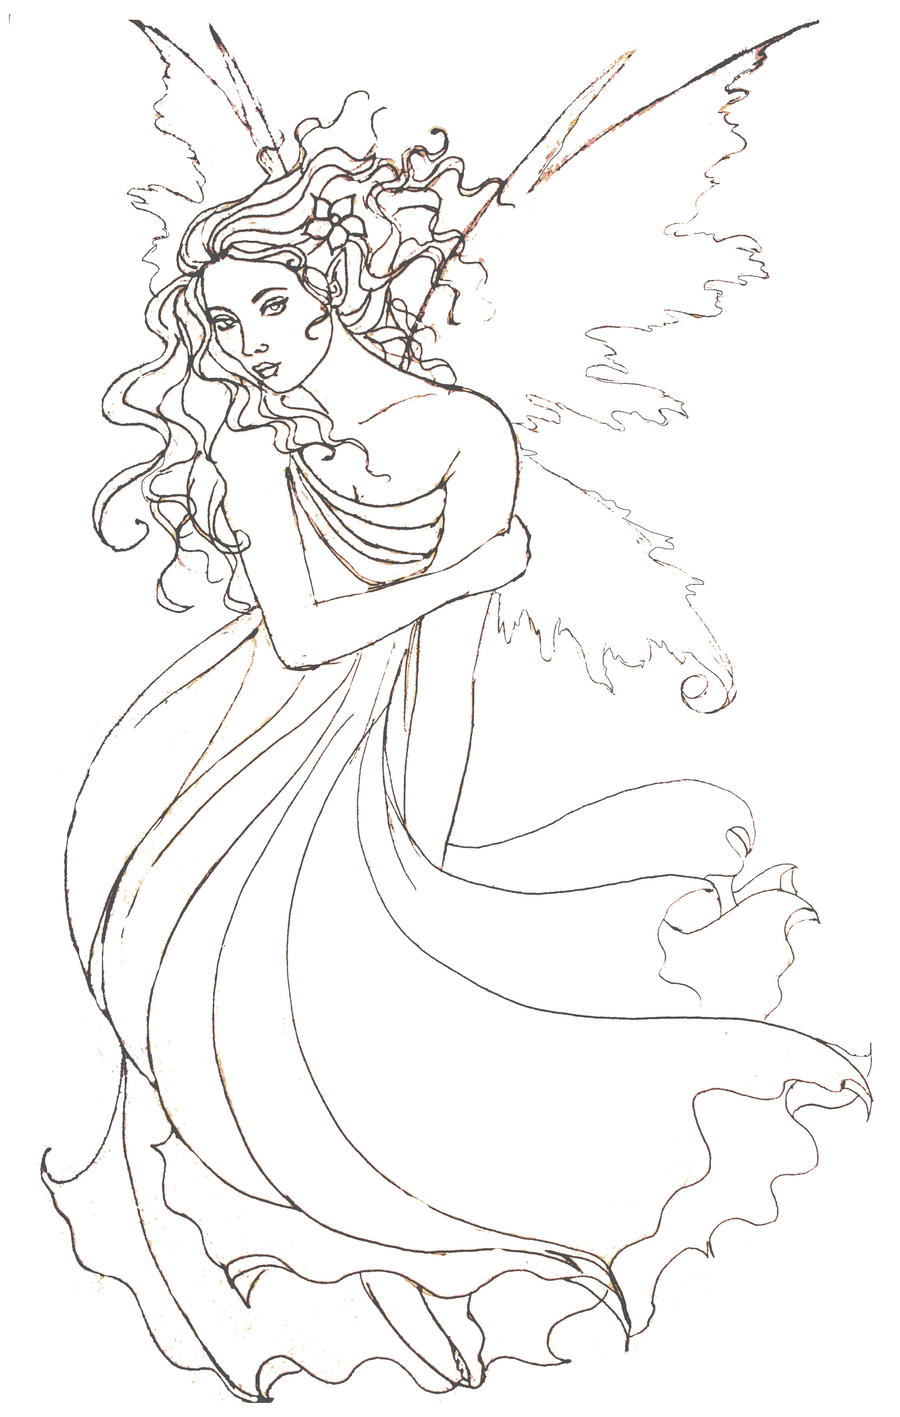 th?id=OIP.SRku1WFKiVHOWry0rHW0CAC Es&pid=15.1 besides coloring pages for adults fairy 1 on coloring pages for adults fairy besides coloring pages for adults fairy 2 on coloring pages for adults fairy in addition coloring pages for adults fairy 3 on coloring pages for adults fairy further coloring pages for adults fairy 4 on coloring pages for adults fairy